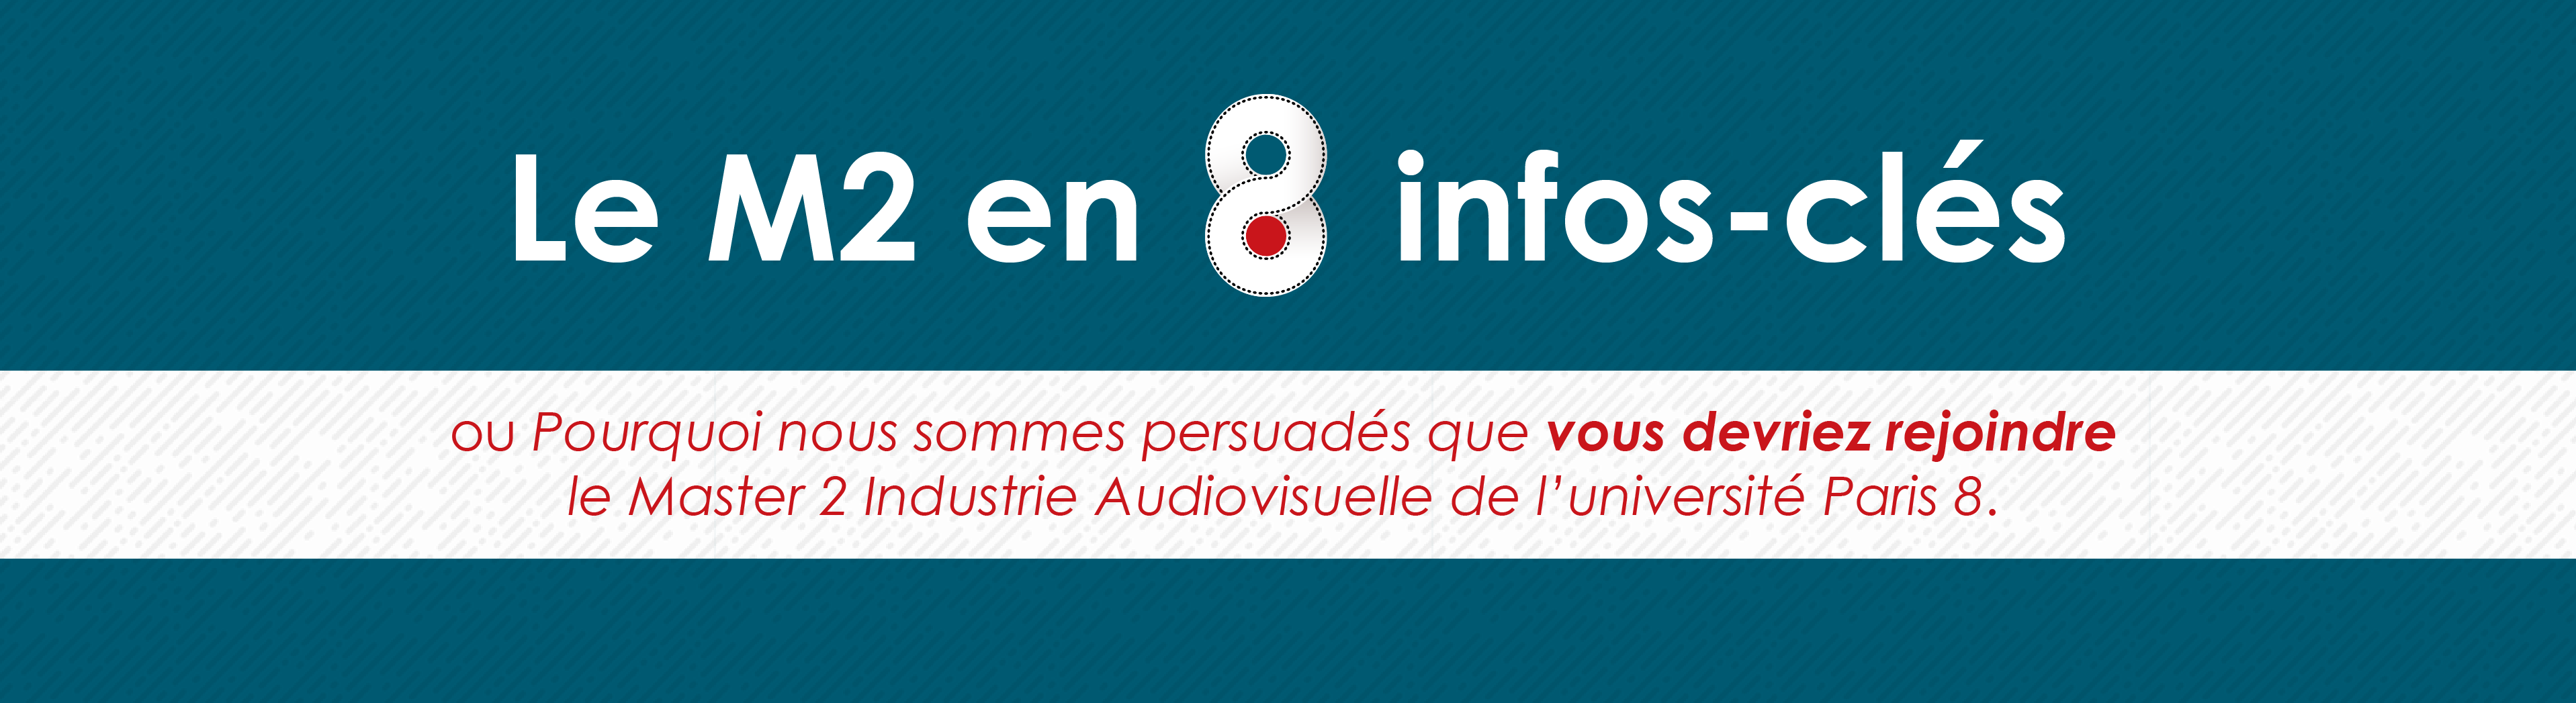 Pourquoi rejoindre le Master 2 Industrie Audiovisuelle de Paris 8 - Header